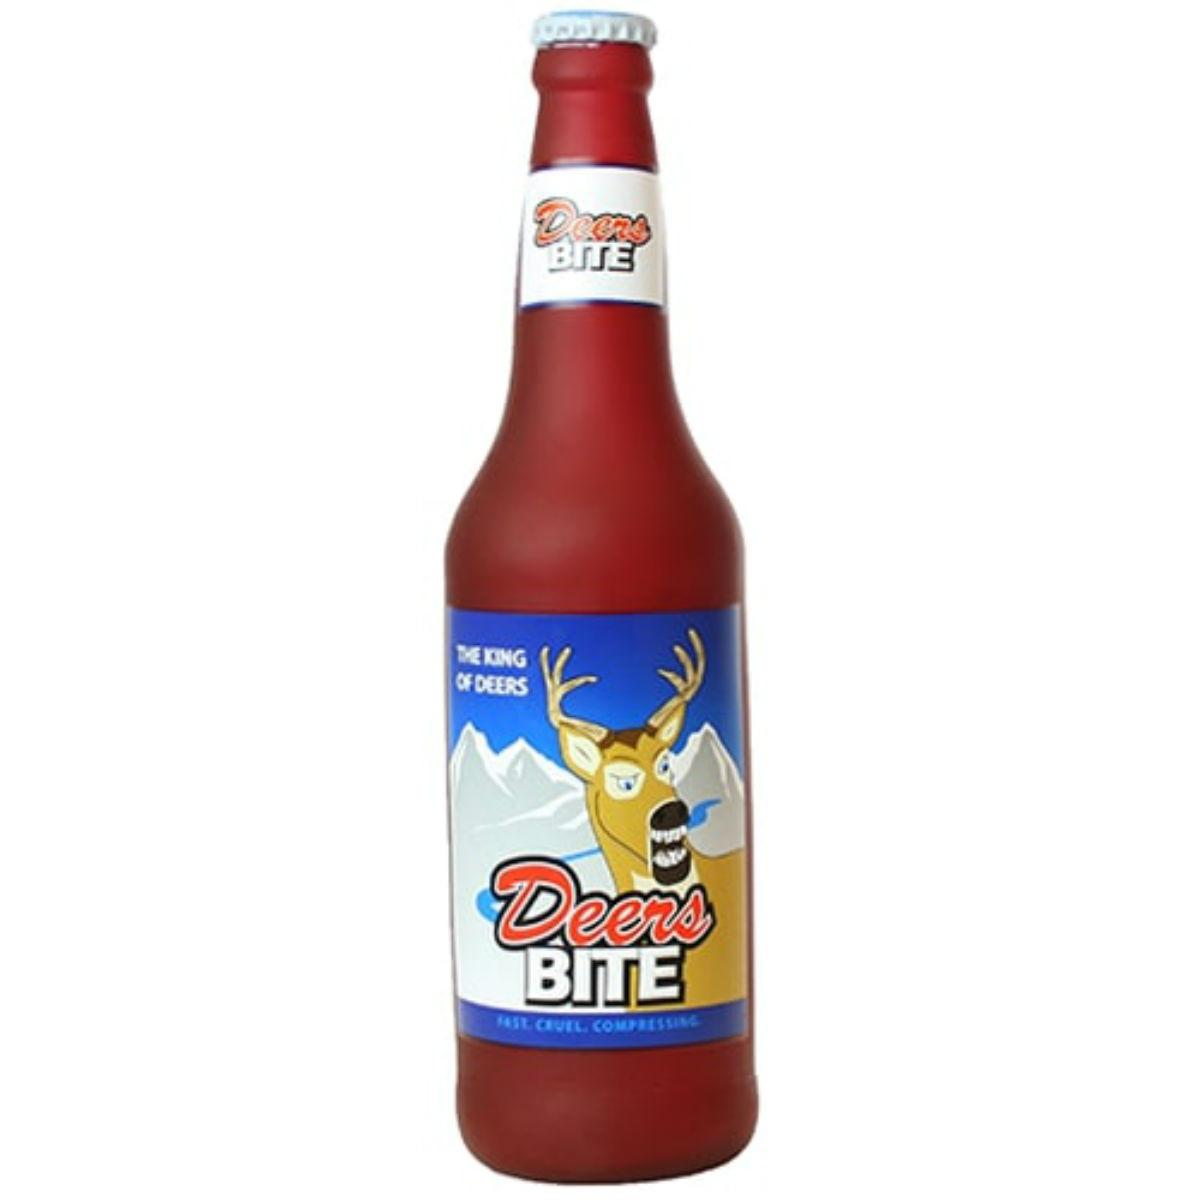 Silly Squeakers Beer Bottle Dog Toy - Deers Bite